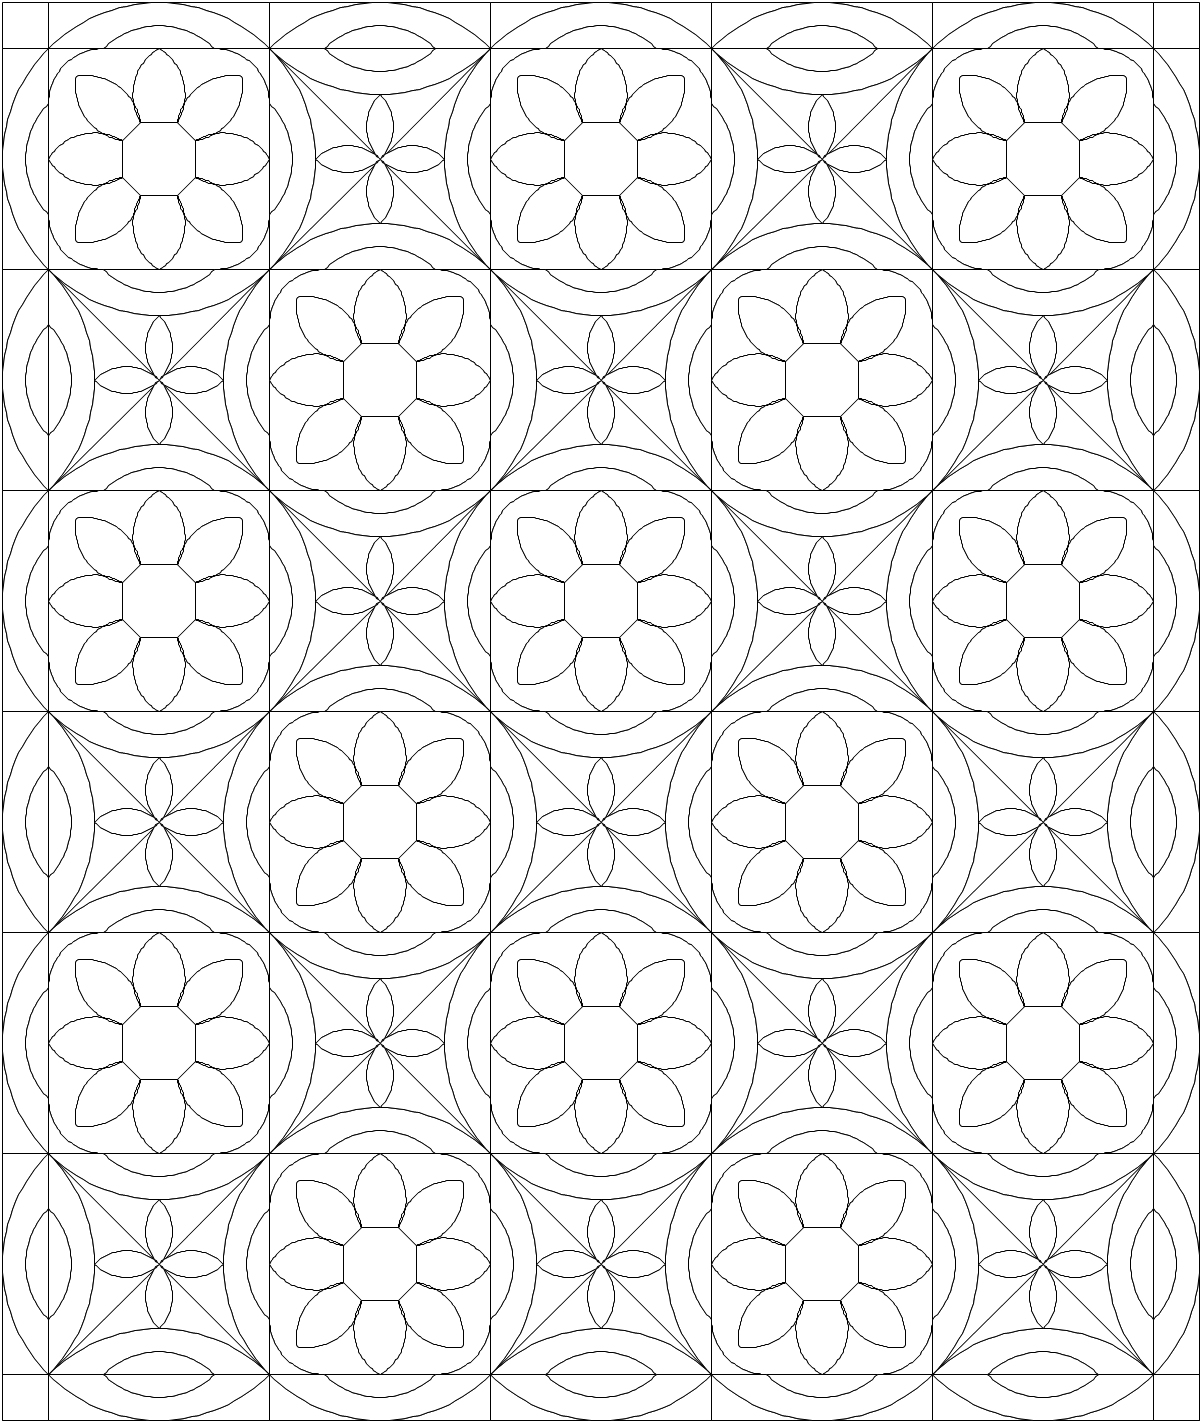 today - Quilt Block Coloring Pages